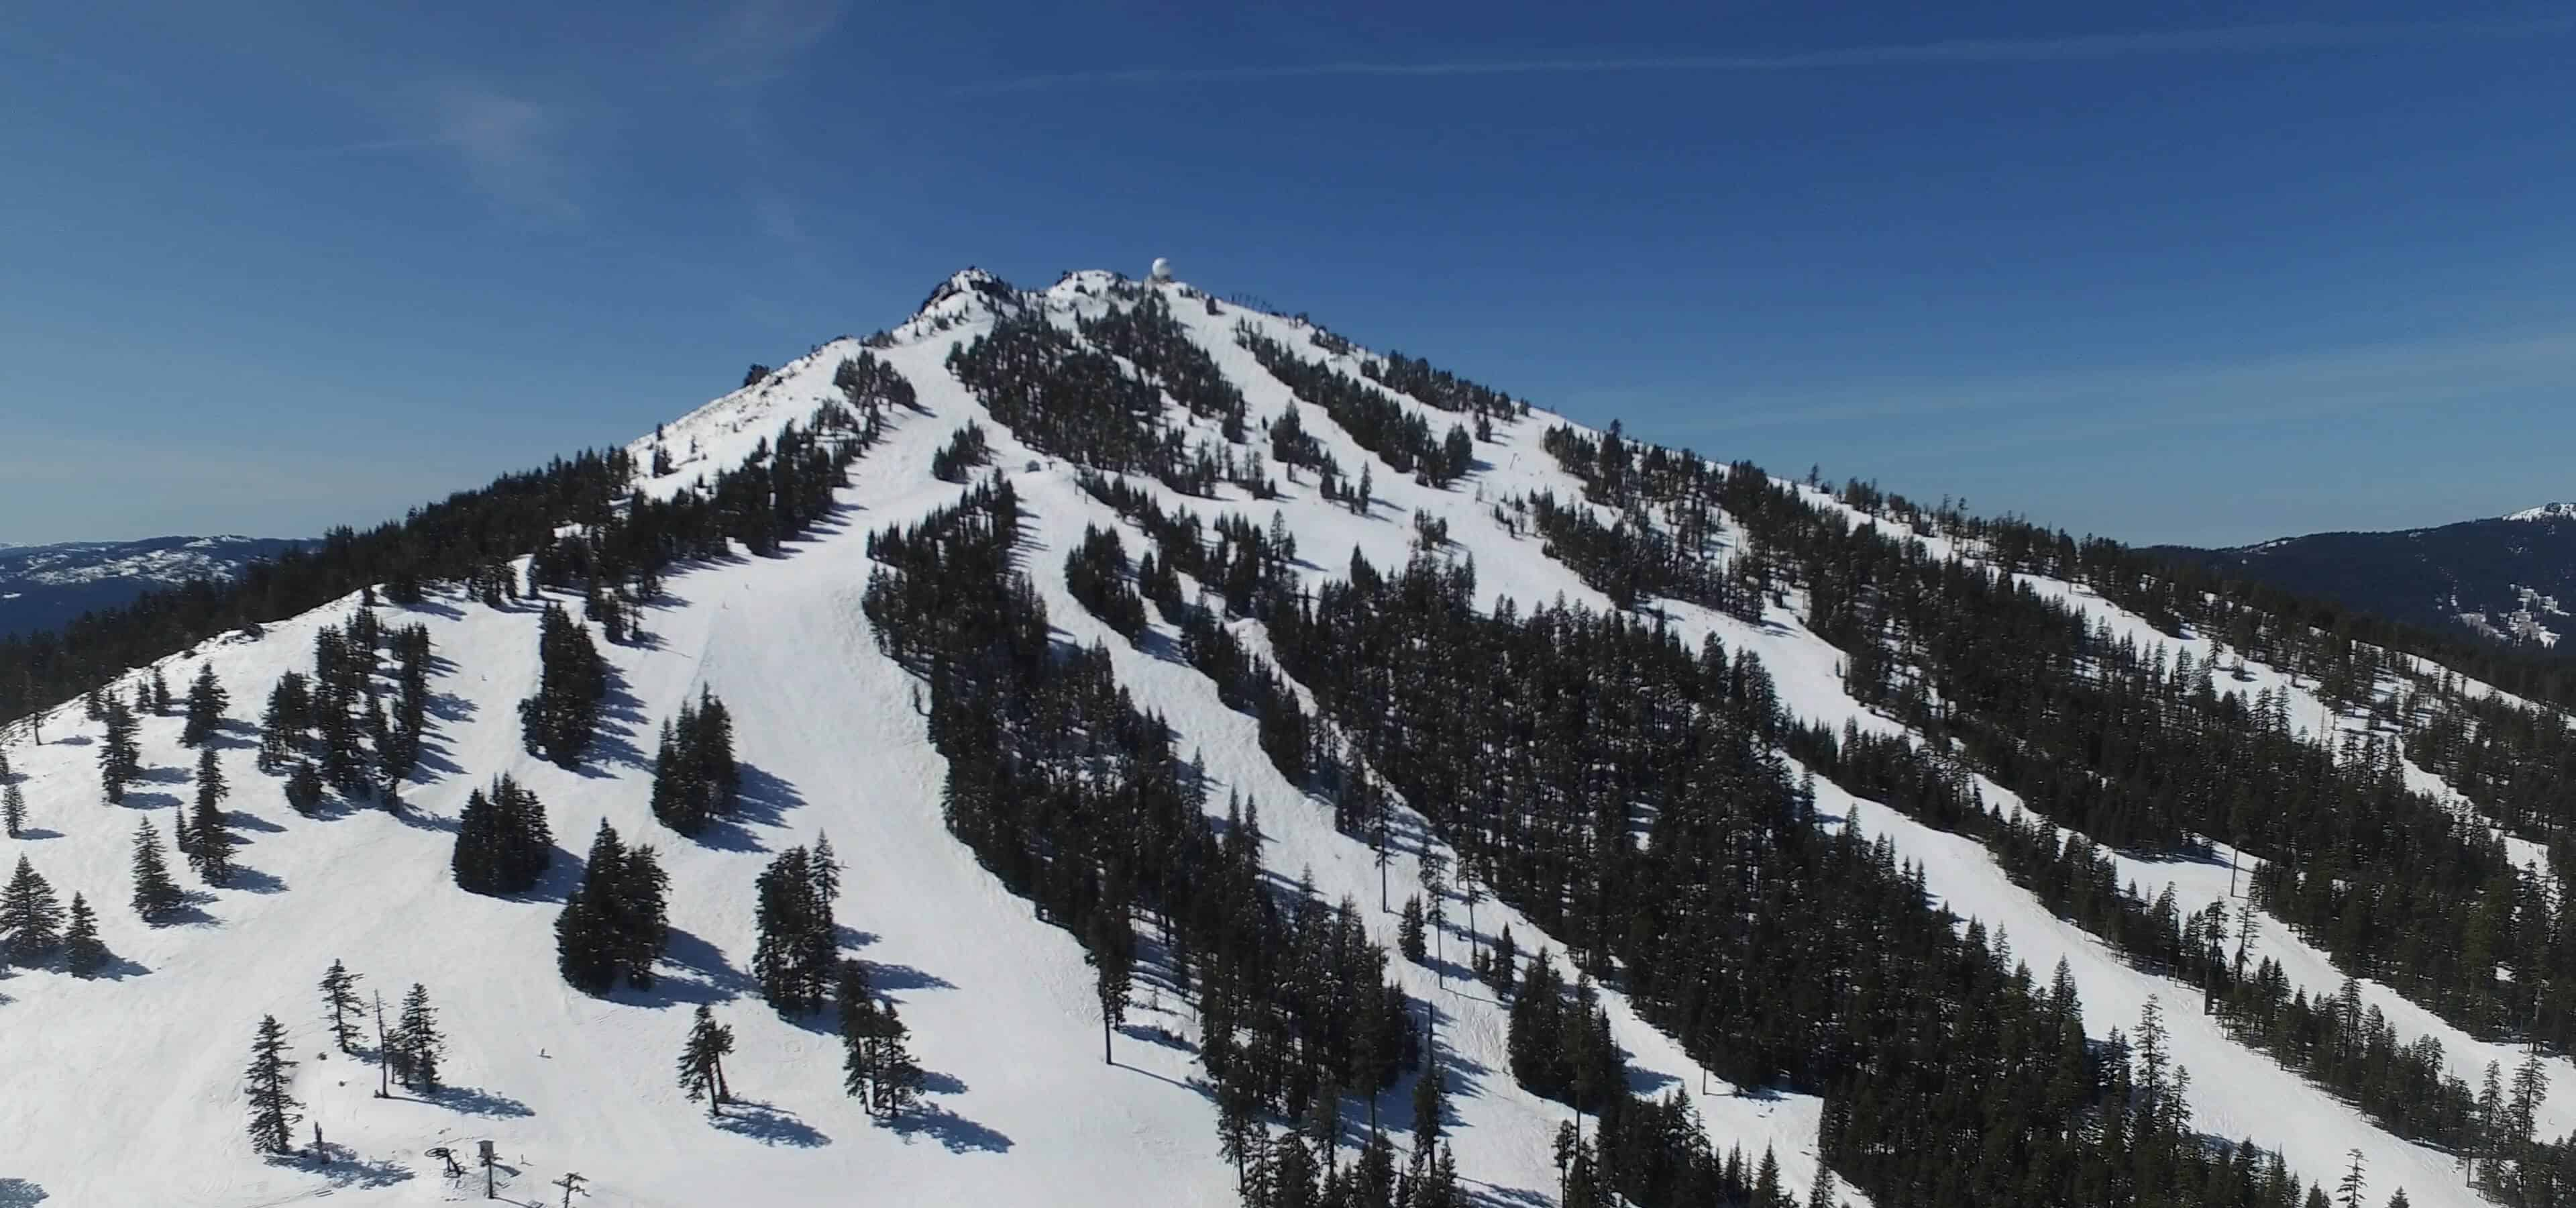 An aerial view of Mt. Ashland